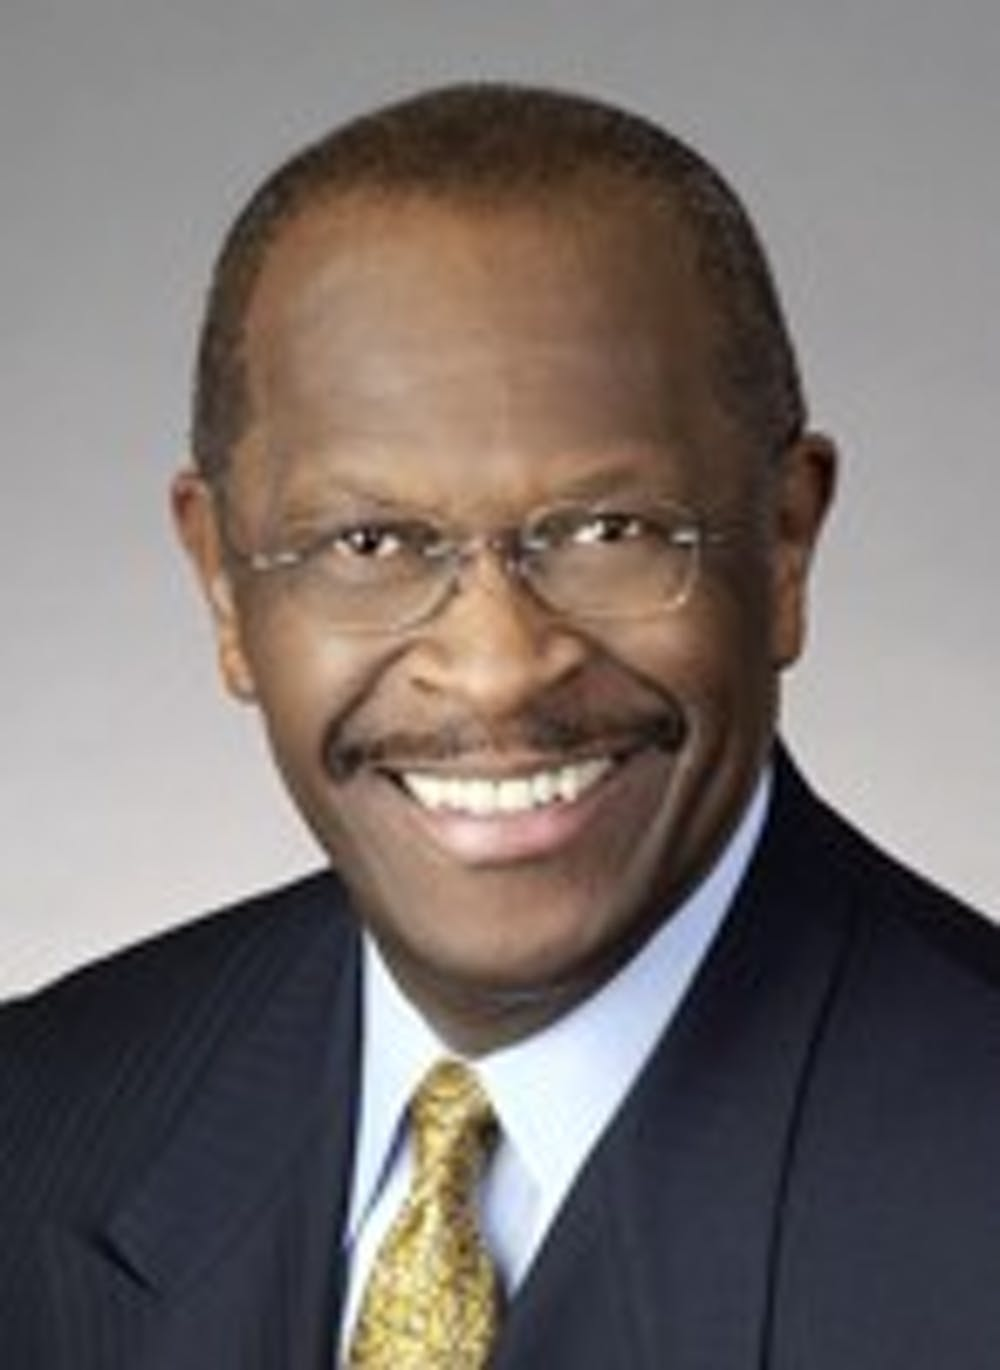 Herman Cain will speak at UNC today